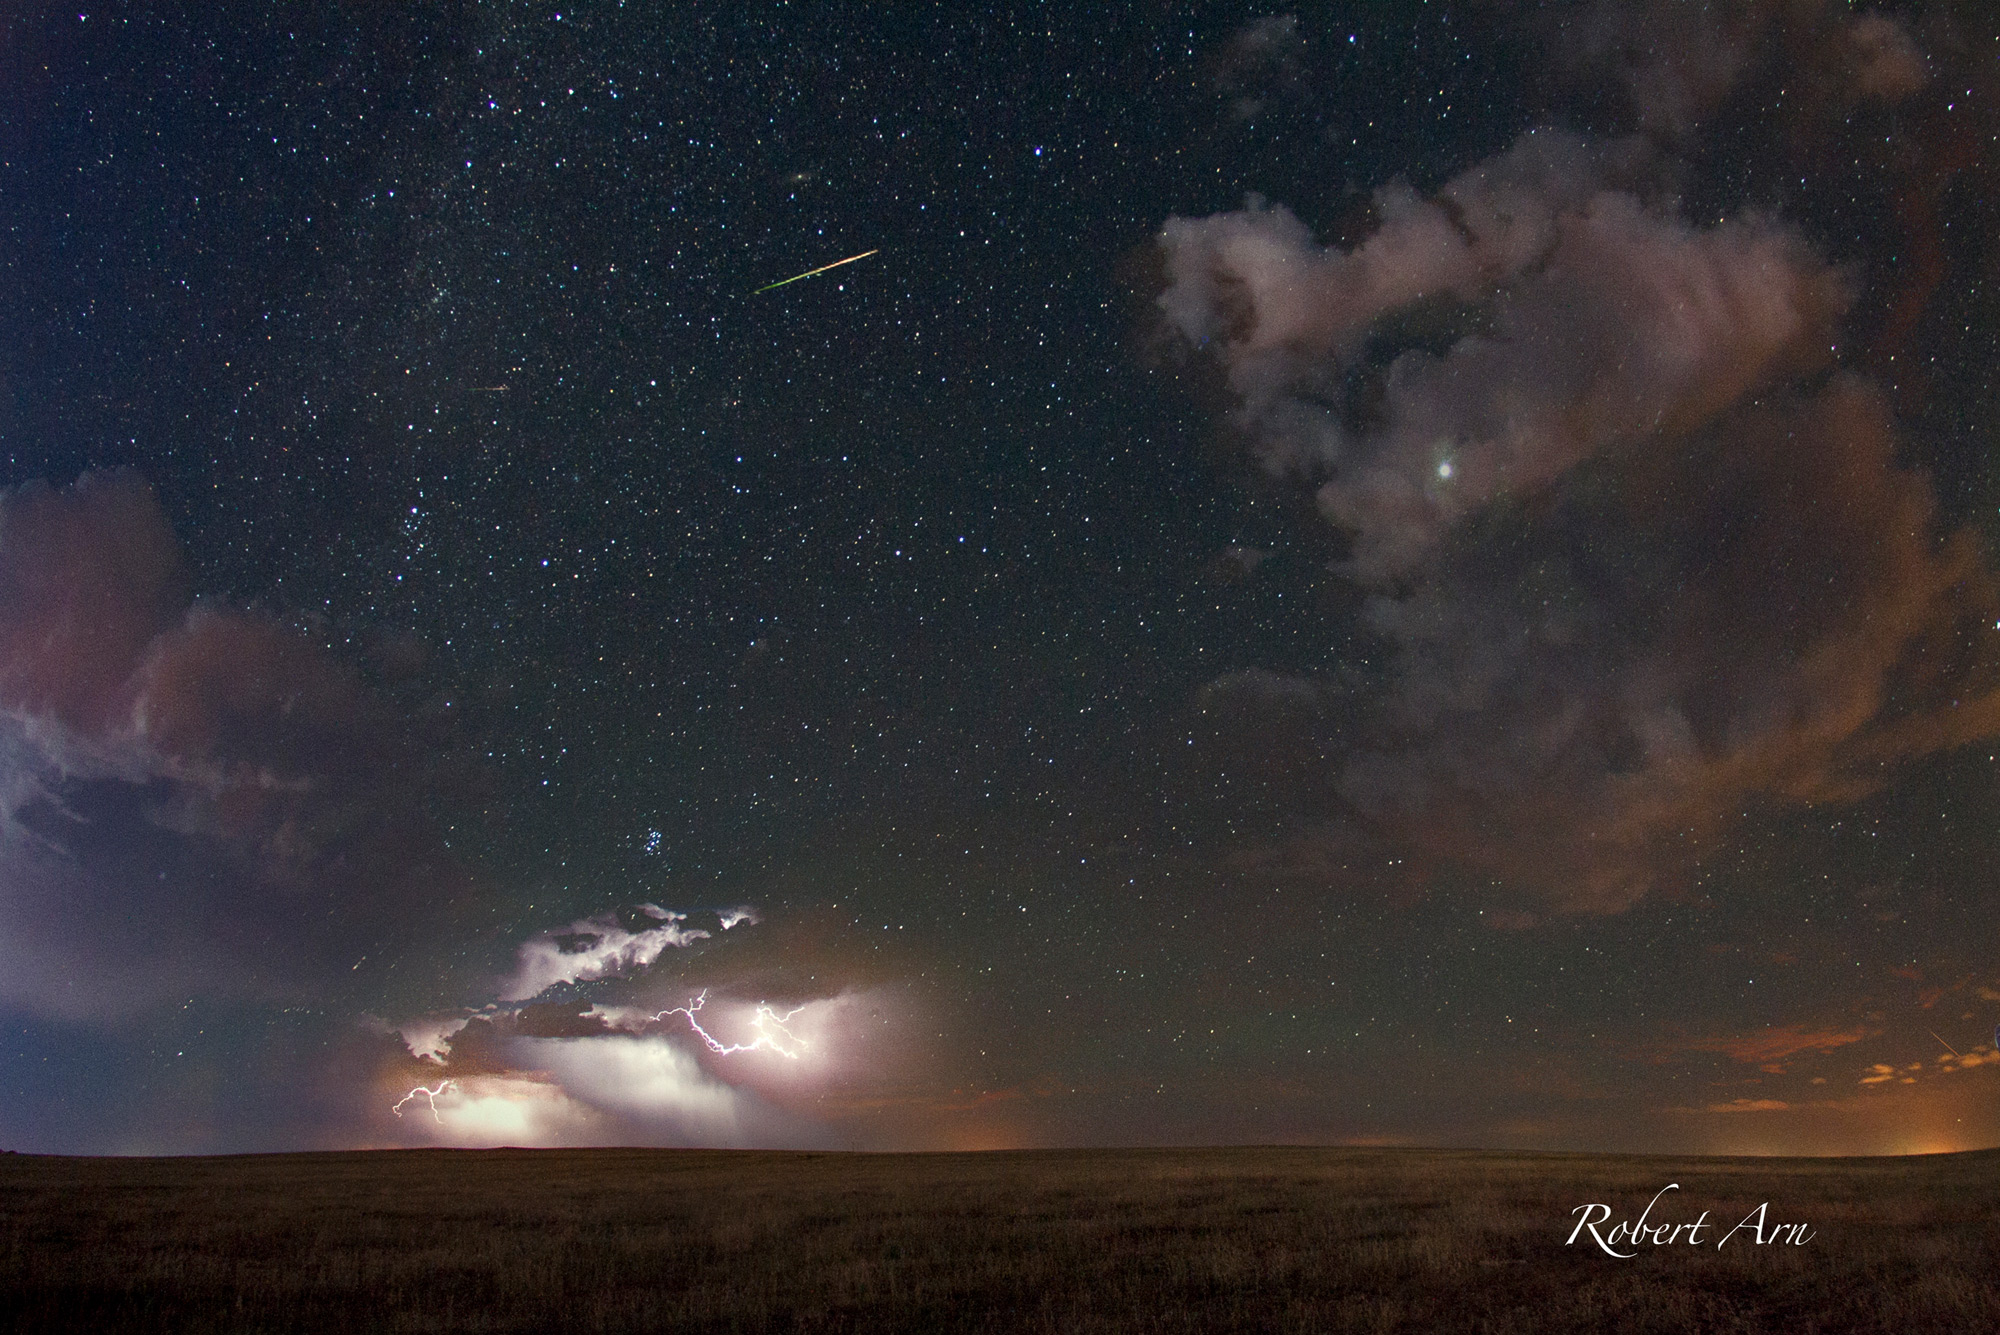 Storm on the Horizon and Perseid Meteor